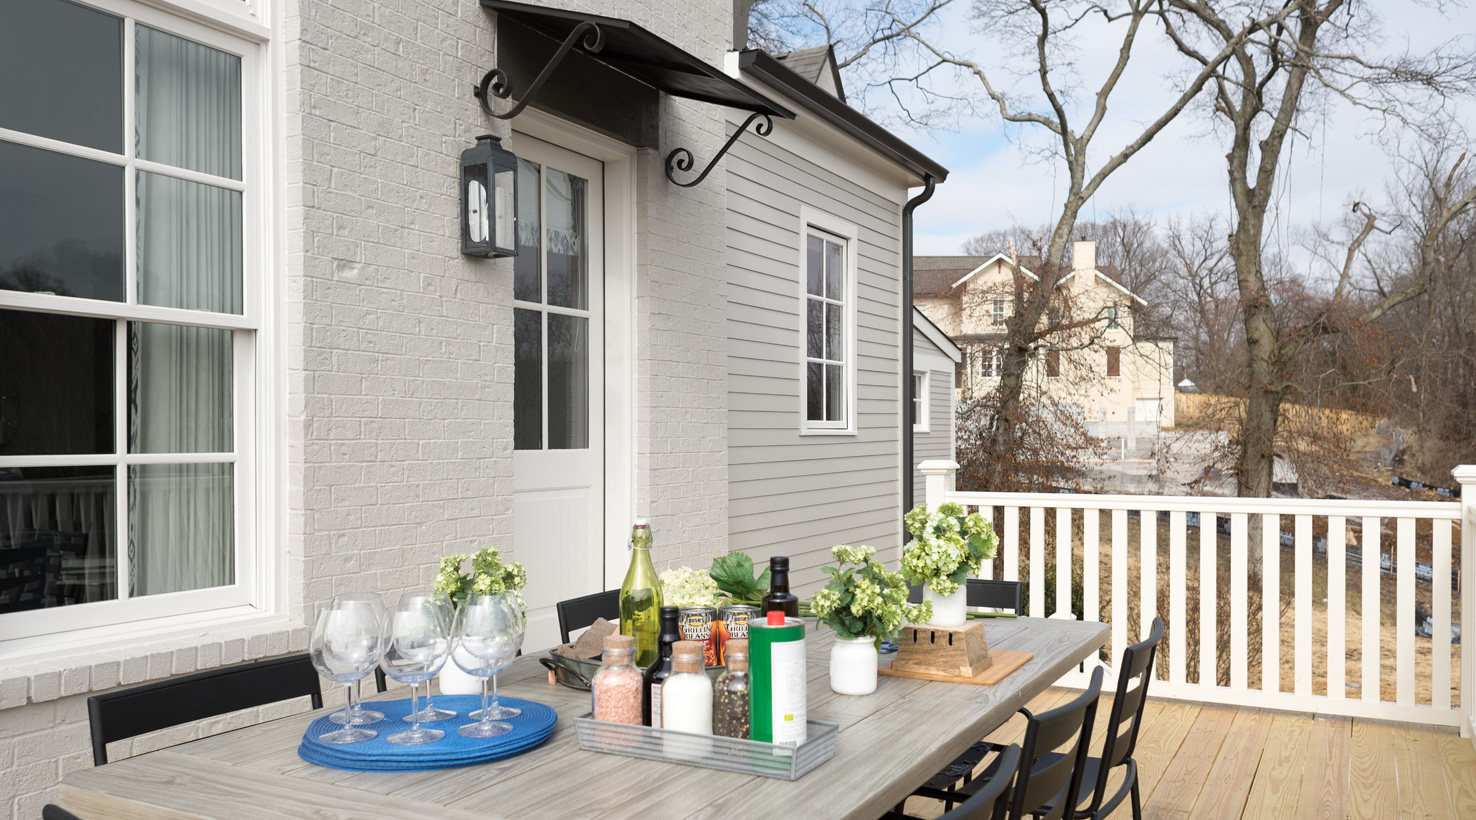 Hgtv Smart Home Exterior Paint Colors Hgtv Smart Home 2013 For The Home Pictures Of The Hgtv